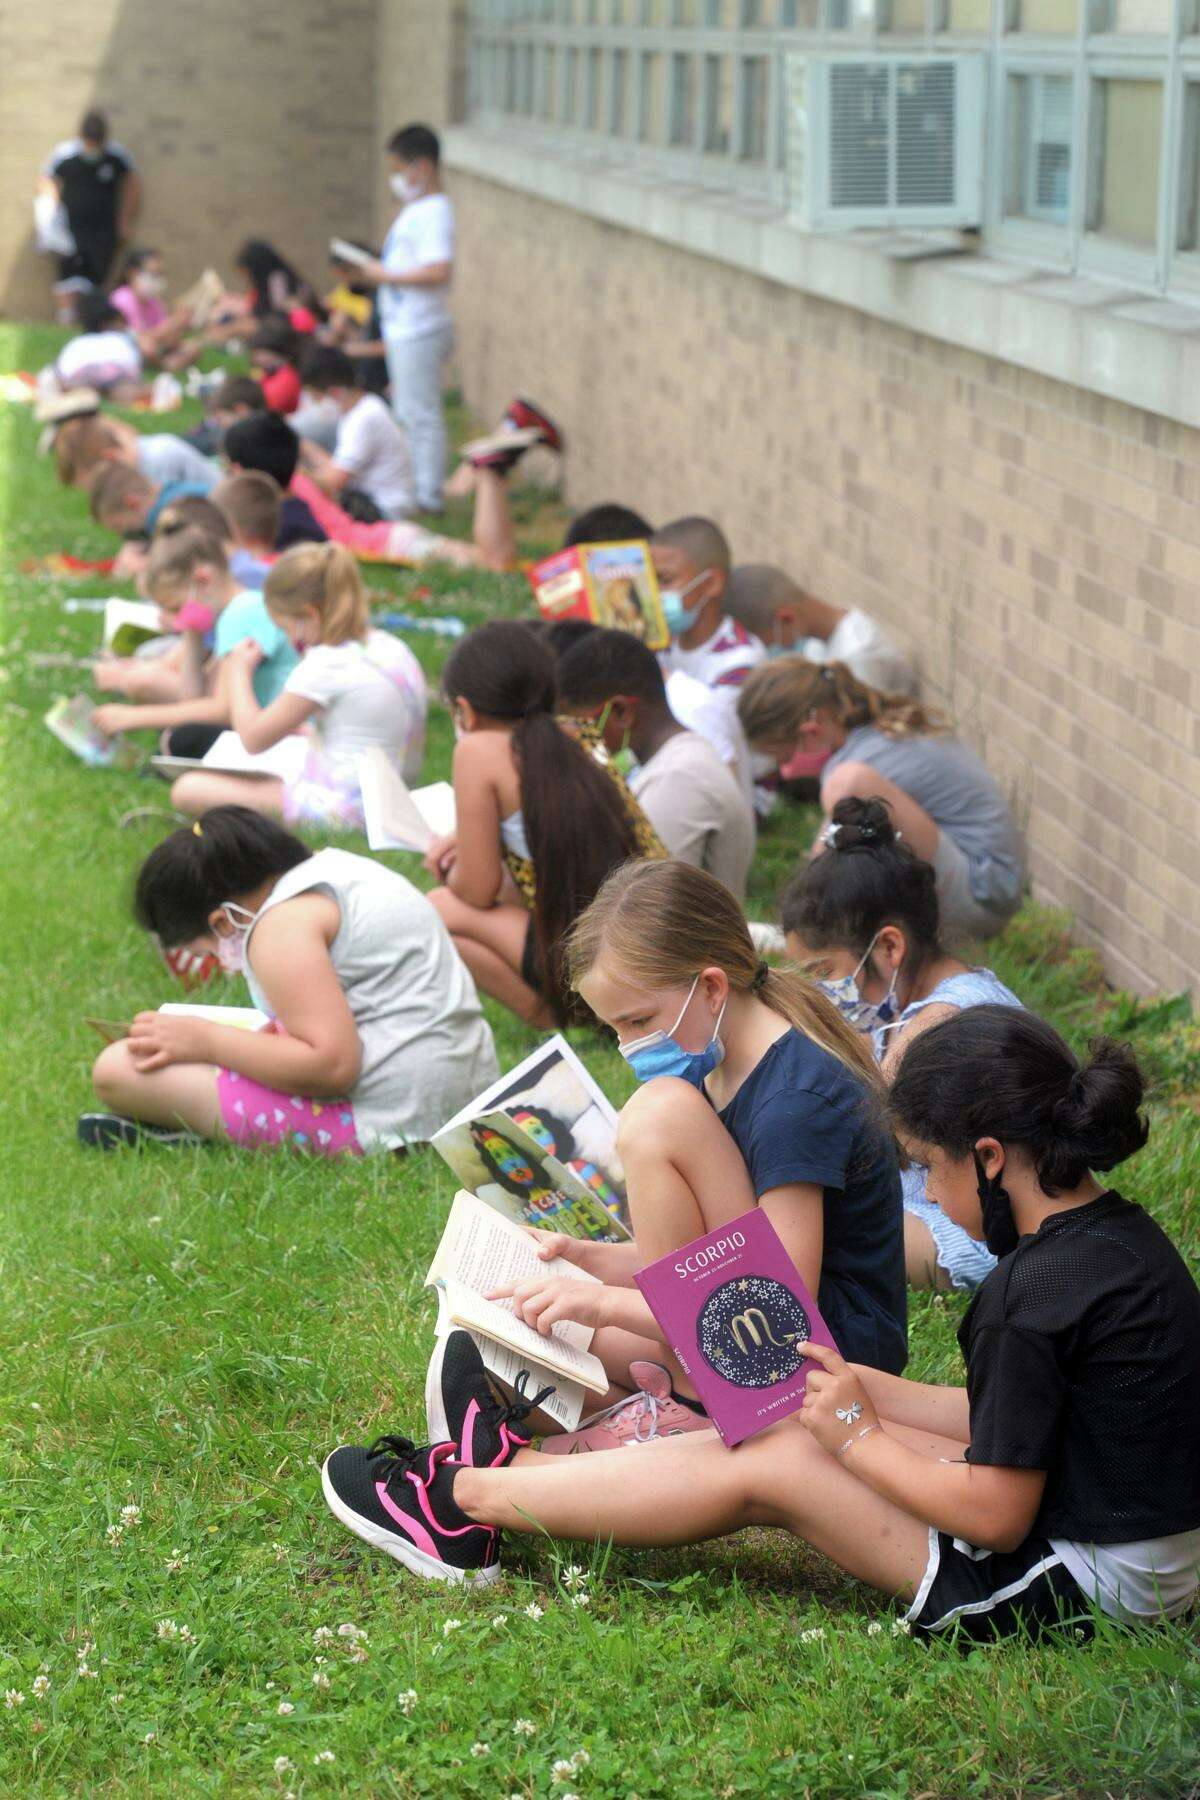 Students read in the shade of their school building on a sweltering morning as they take part in the kickoff event for the summer reading program at Long Hill School, in Shelton, Conn. June 8, 2021.